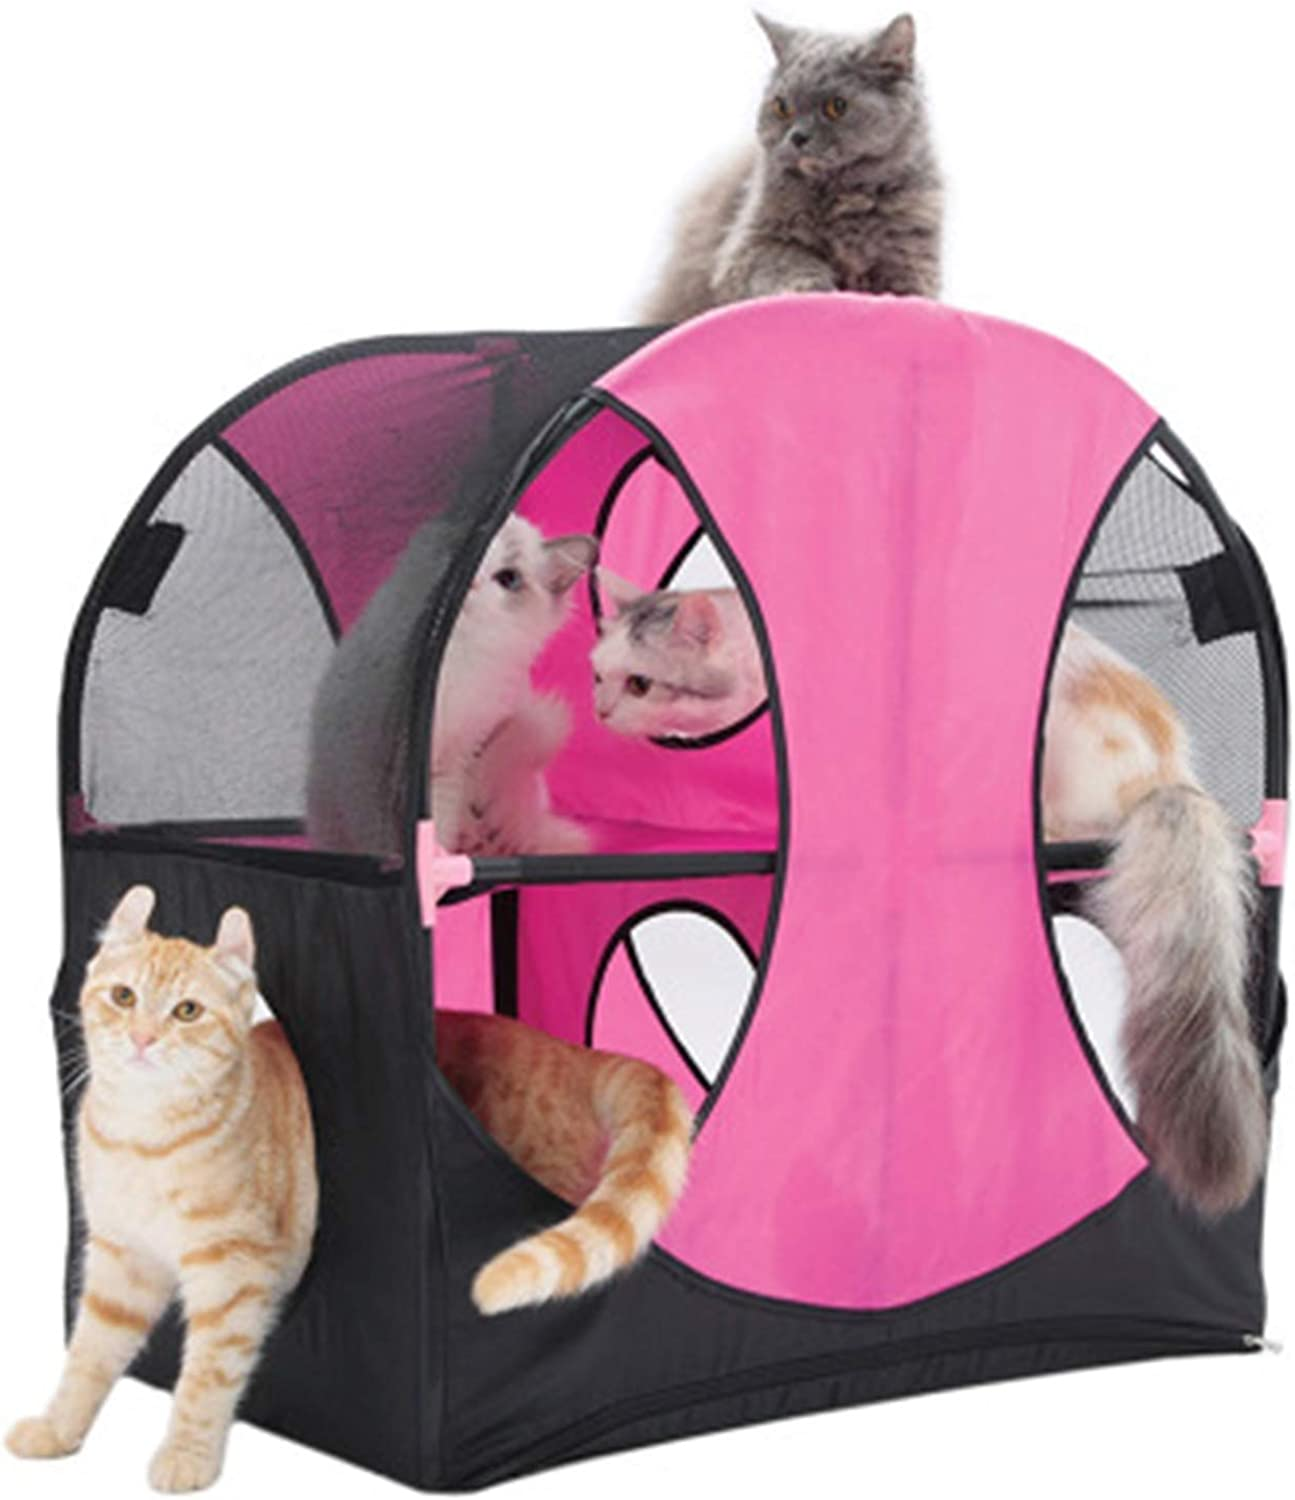 Cat Furniture Oxford Cloth Cat Tunnel Pet Toy Detachable Combination Cat Nest Double Layer Cat Creative Frame Climbing Frame 66X66X42cm